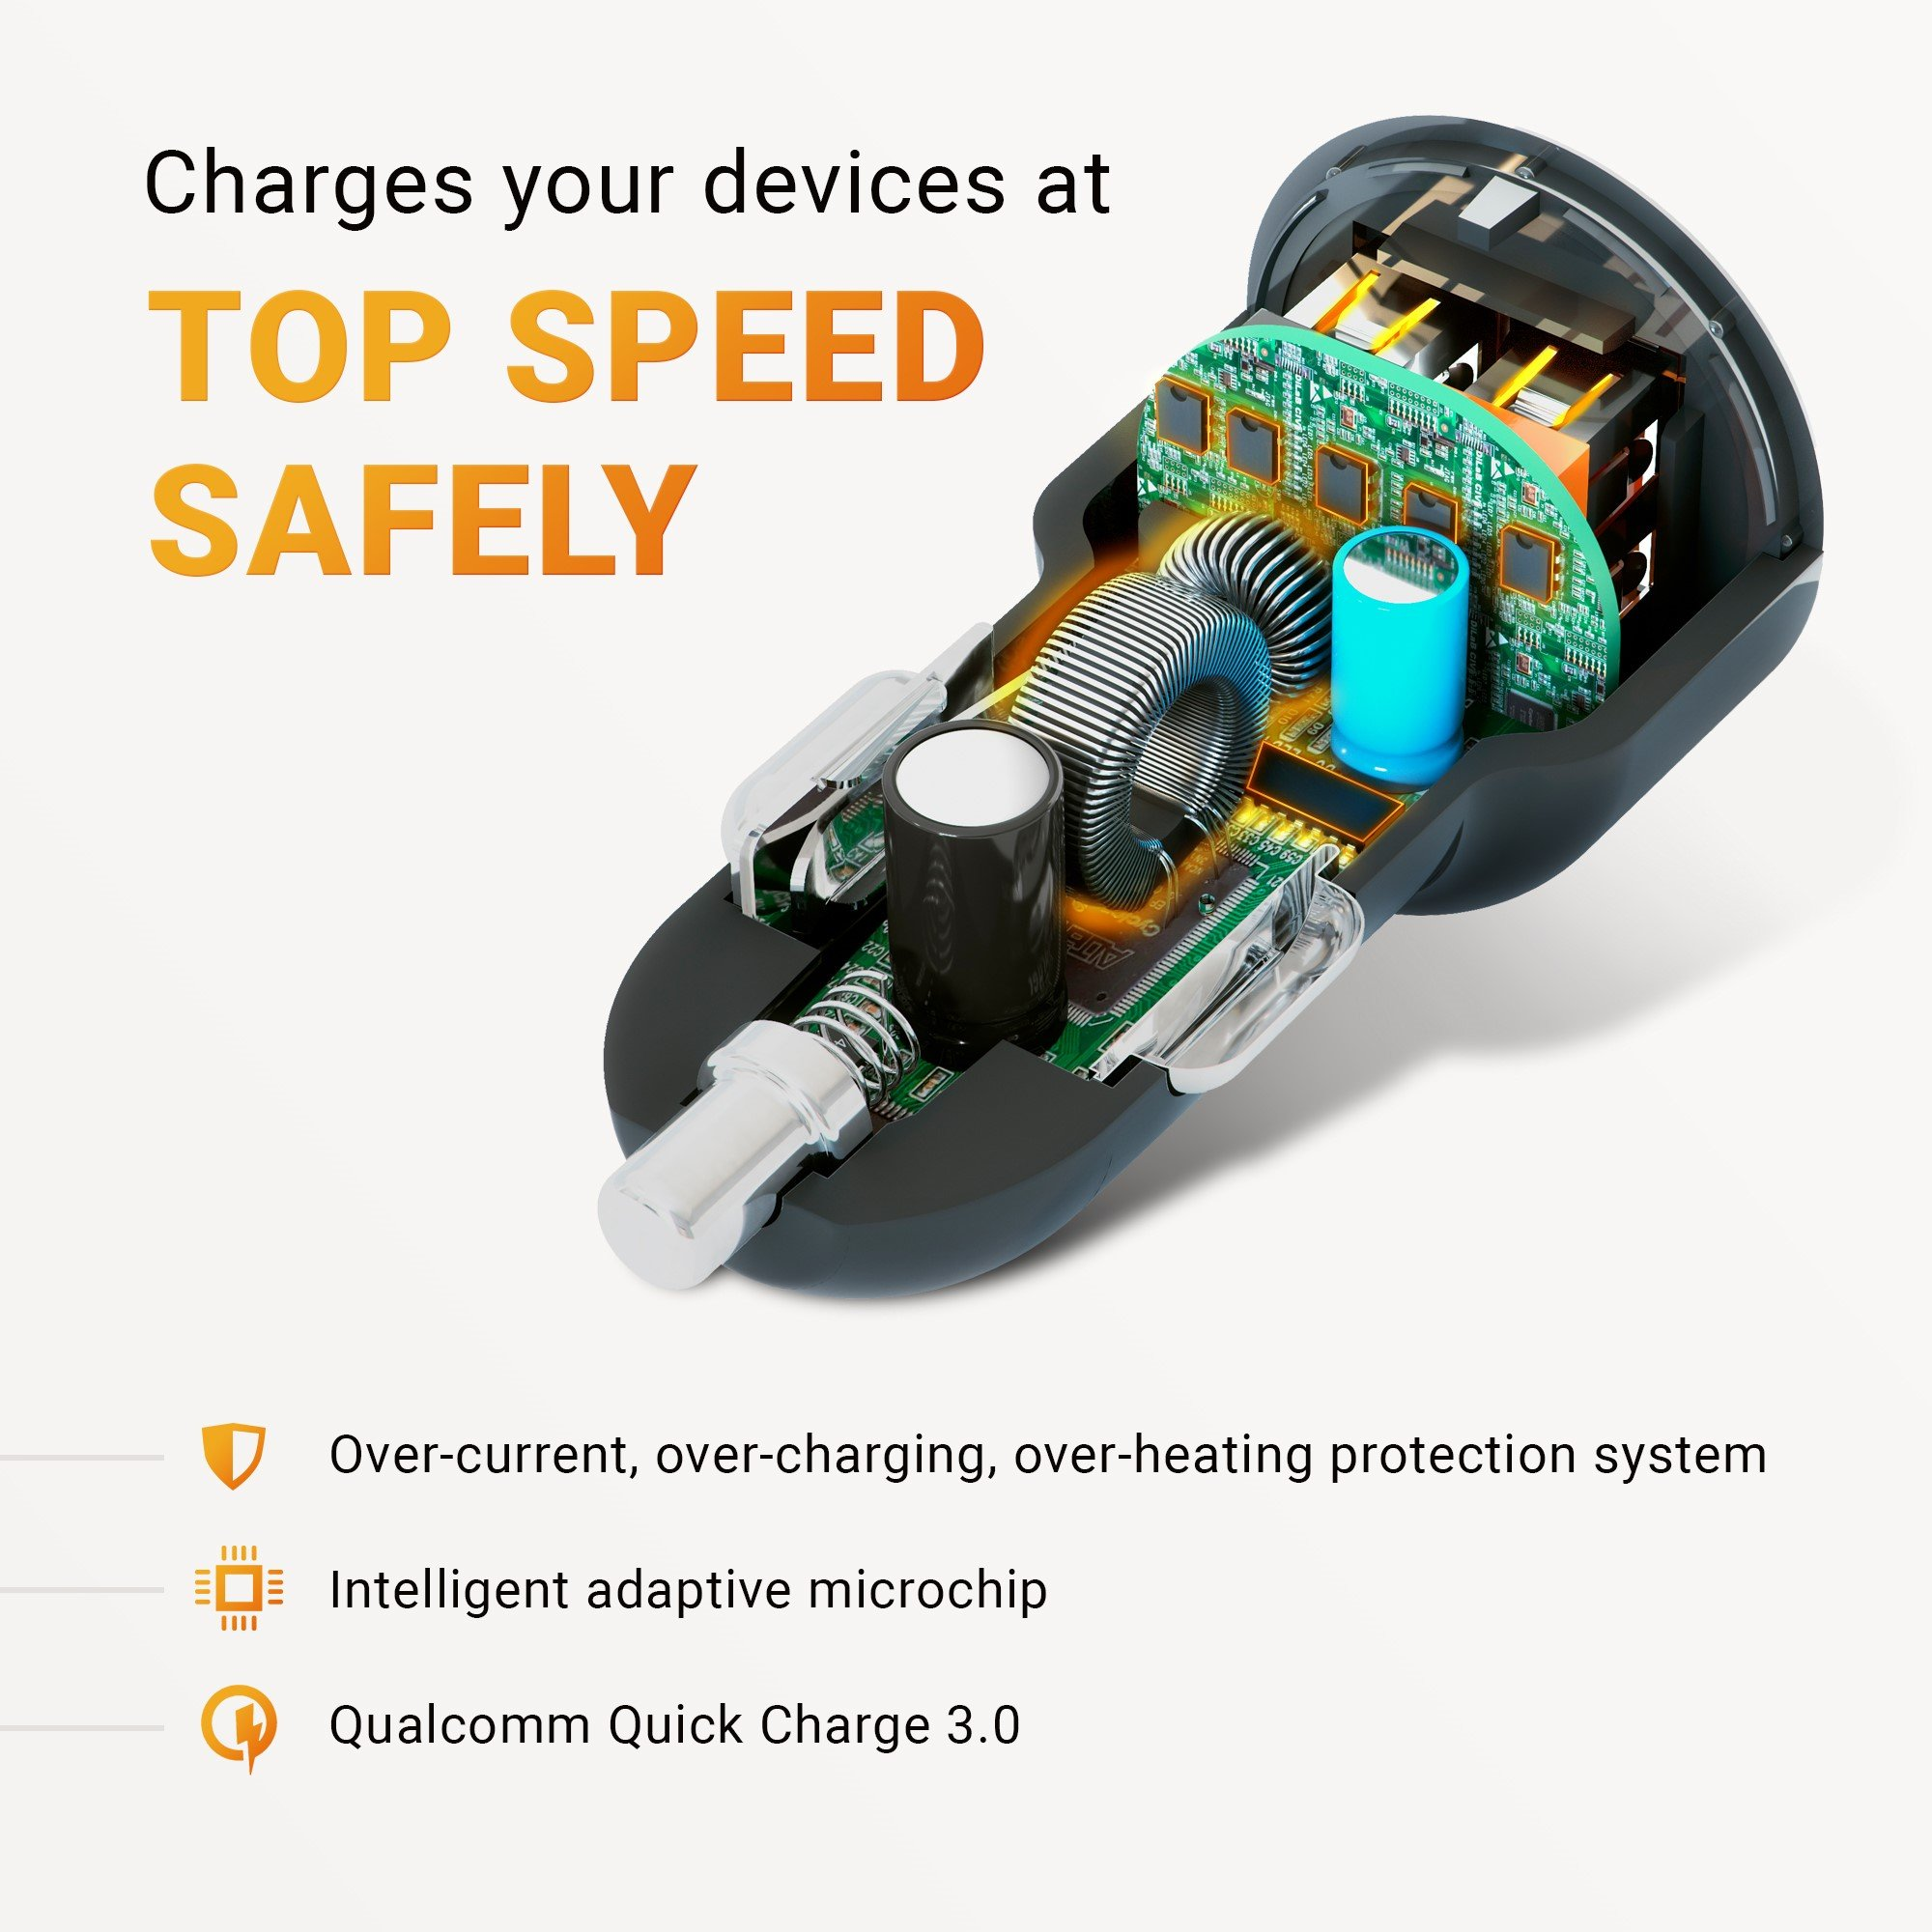 2018 HUSSELL Car Charger. Quick Charge 3.0 + 2.4A Smart IC Dual USB Car Charger Adapter for any iOS or Android Devices: Samsung and More. Car Adapter. Car Charger Adapter. Car Charger USB by HUSSELL (Image #6)